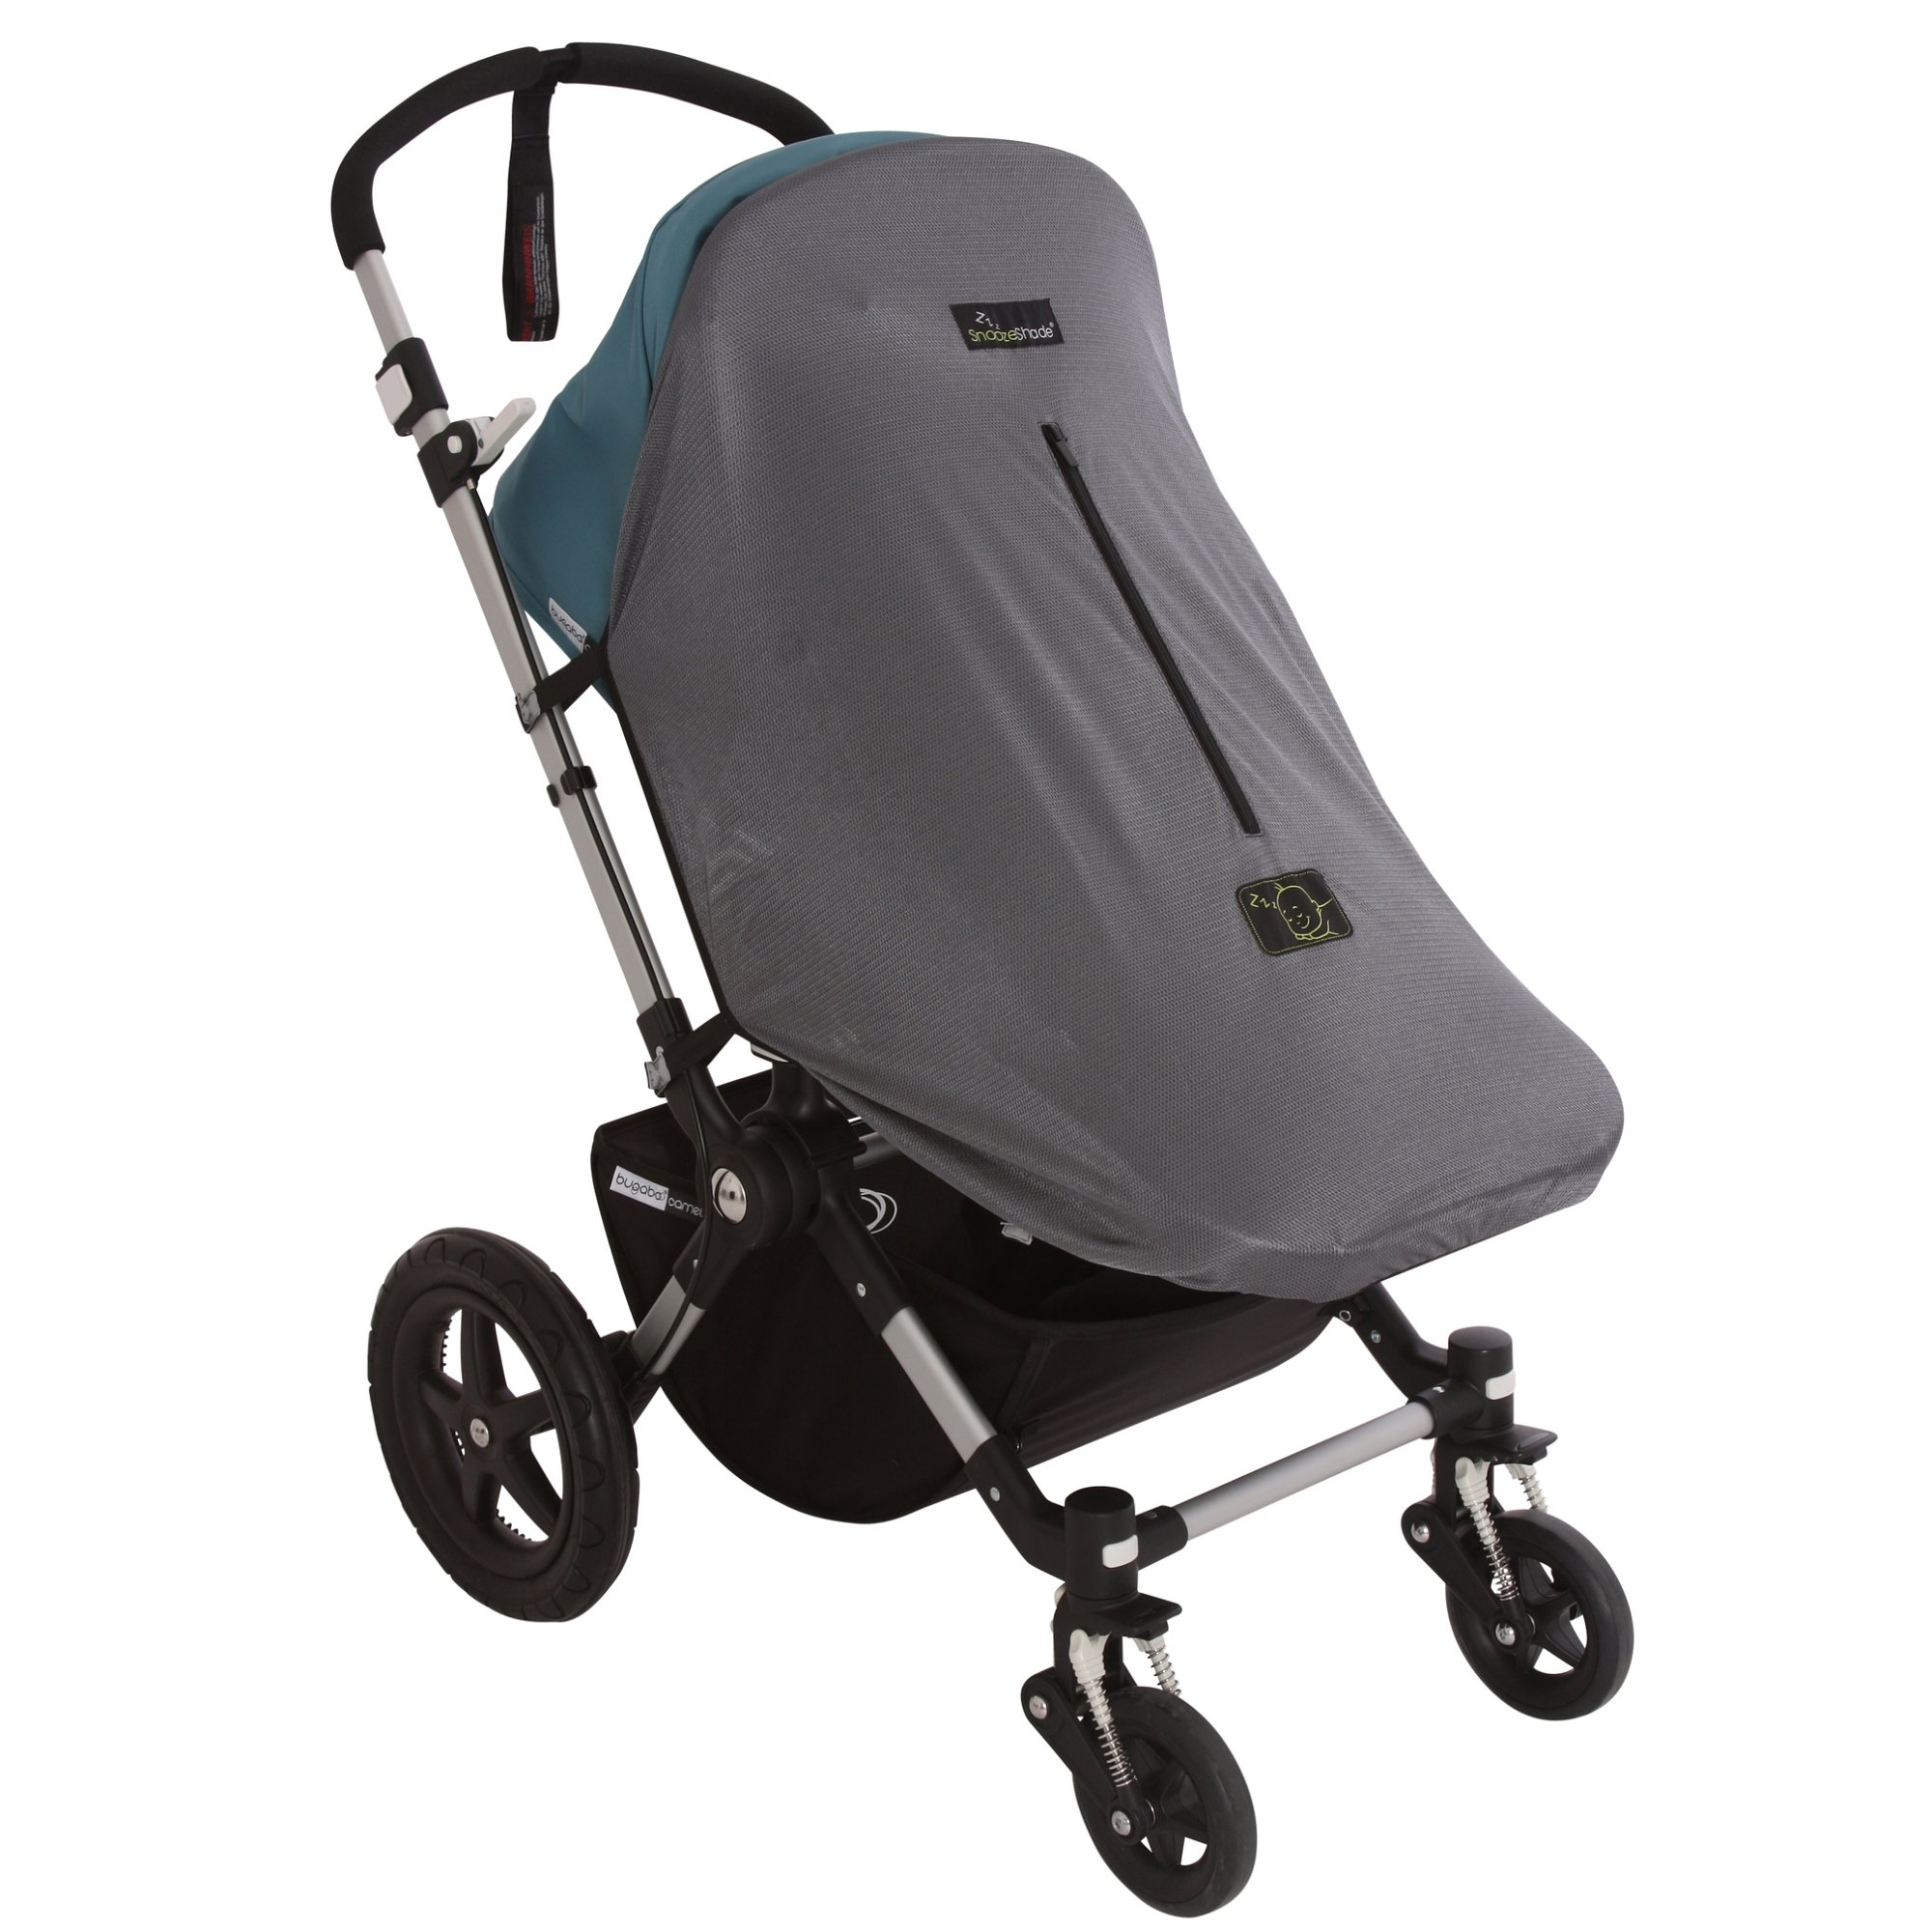 SnoozeShade Original Deluxe - Stroller Sun Shade and Baby Sleep Aid